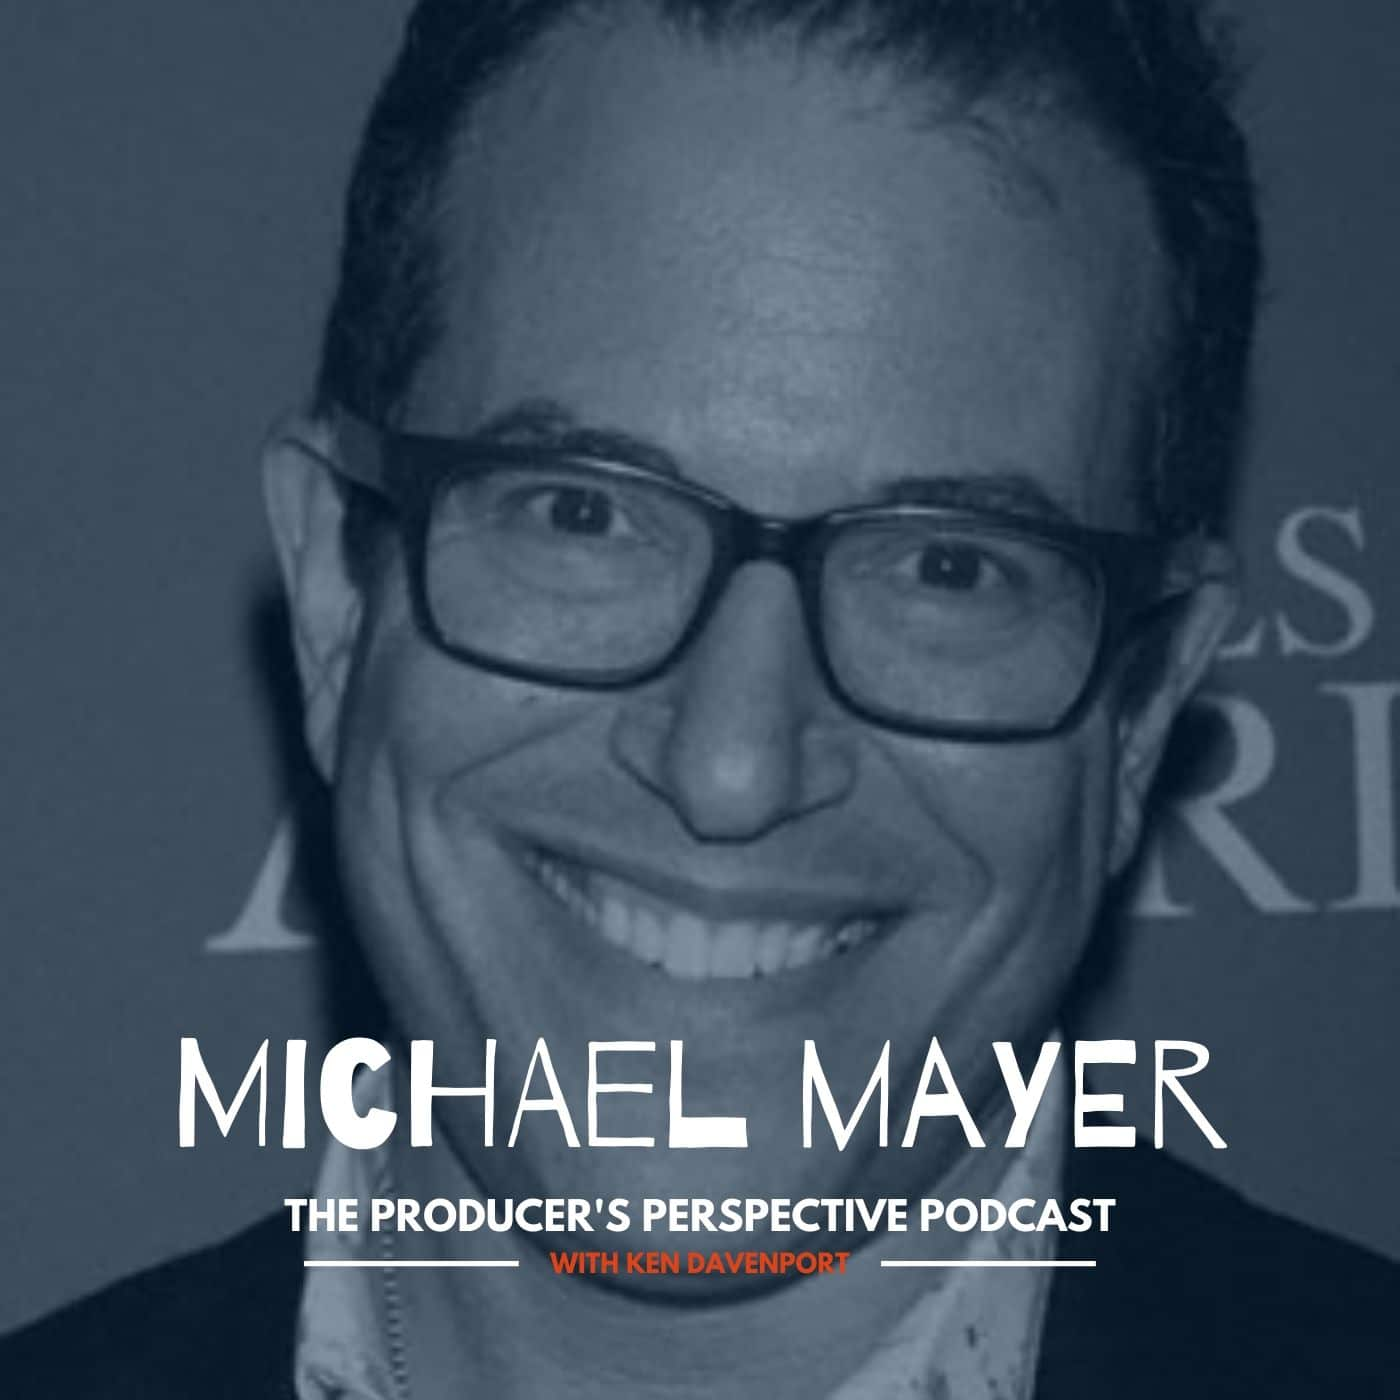 Ken Davenport's The Producer's Perspective Podcast Episode 187 - Michael Mayer